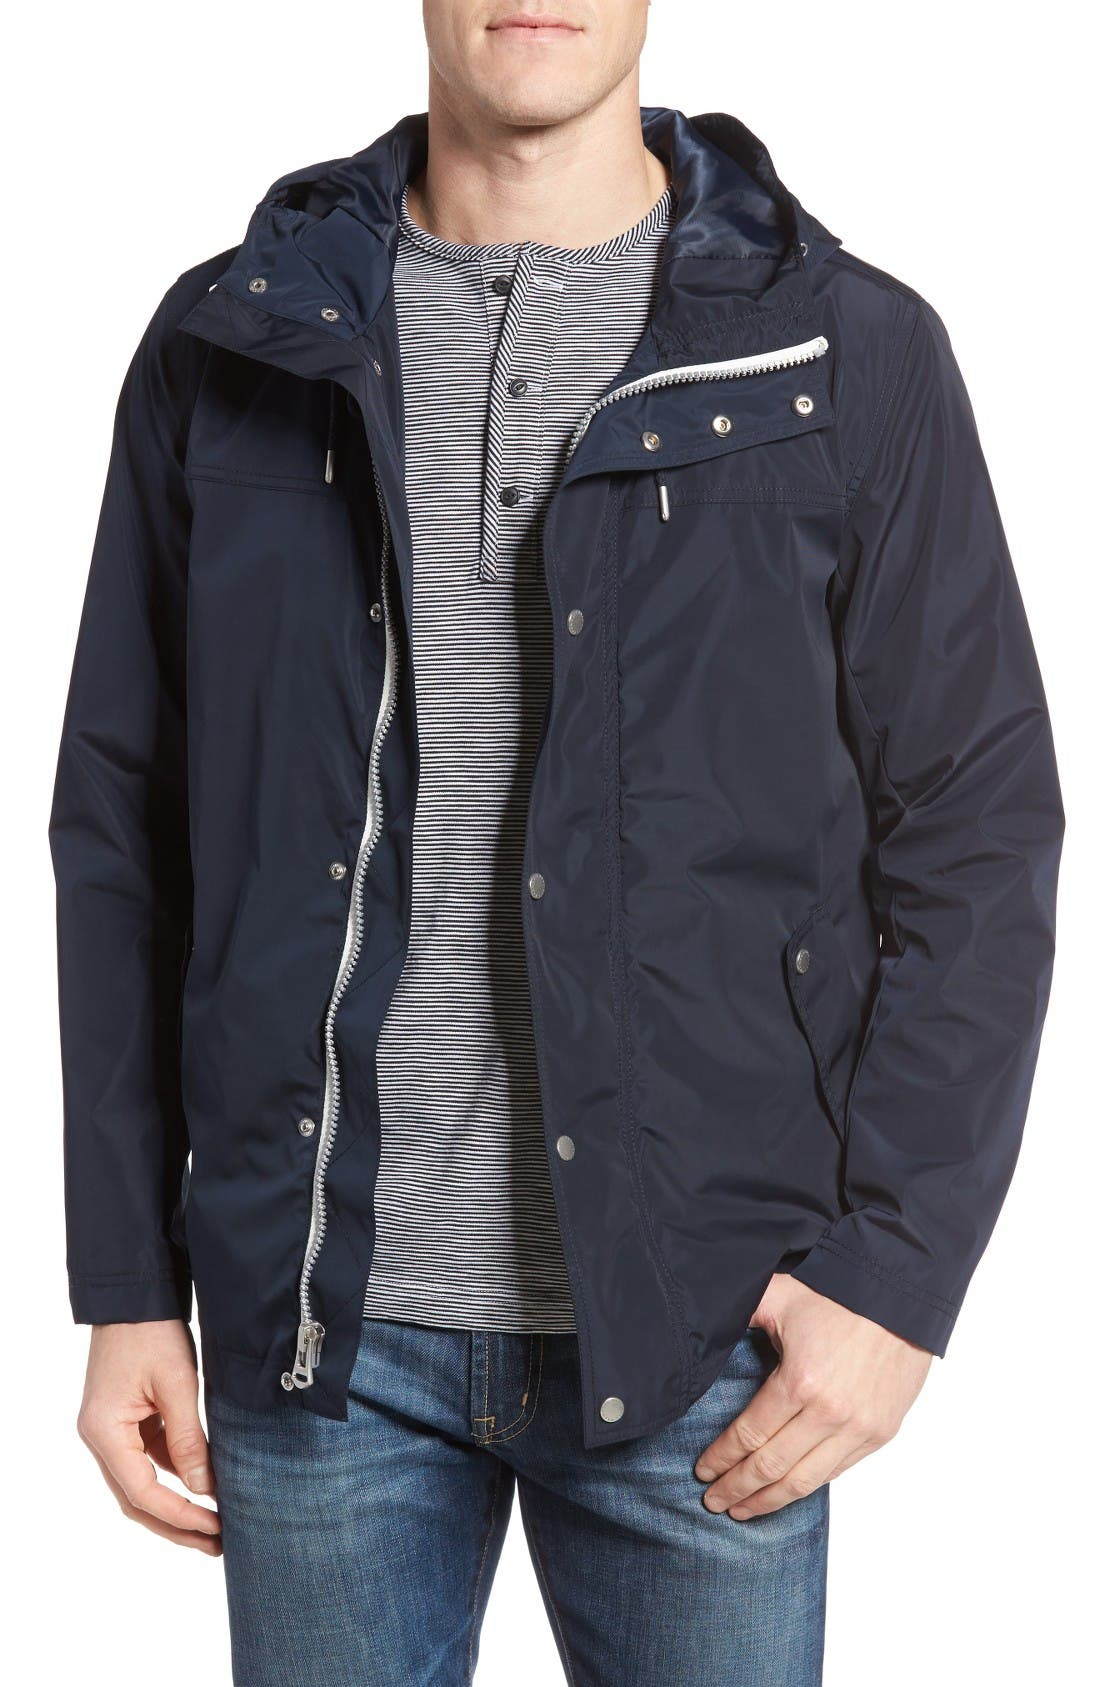 Main Image - Cole Haan Packable Hooded Rain Jacket